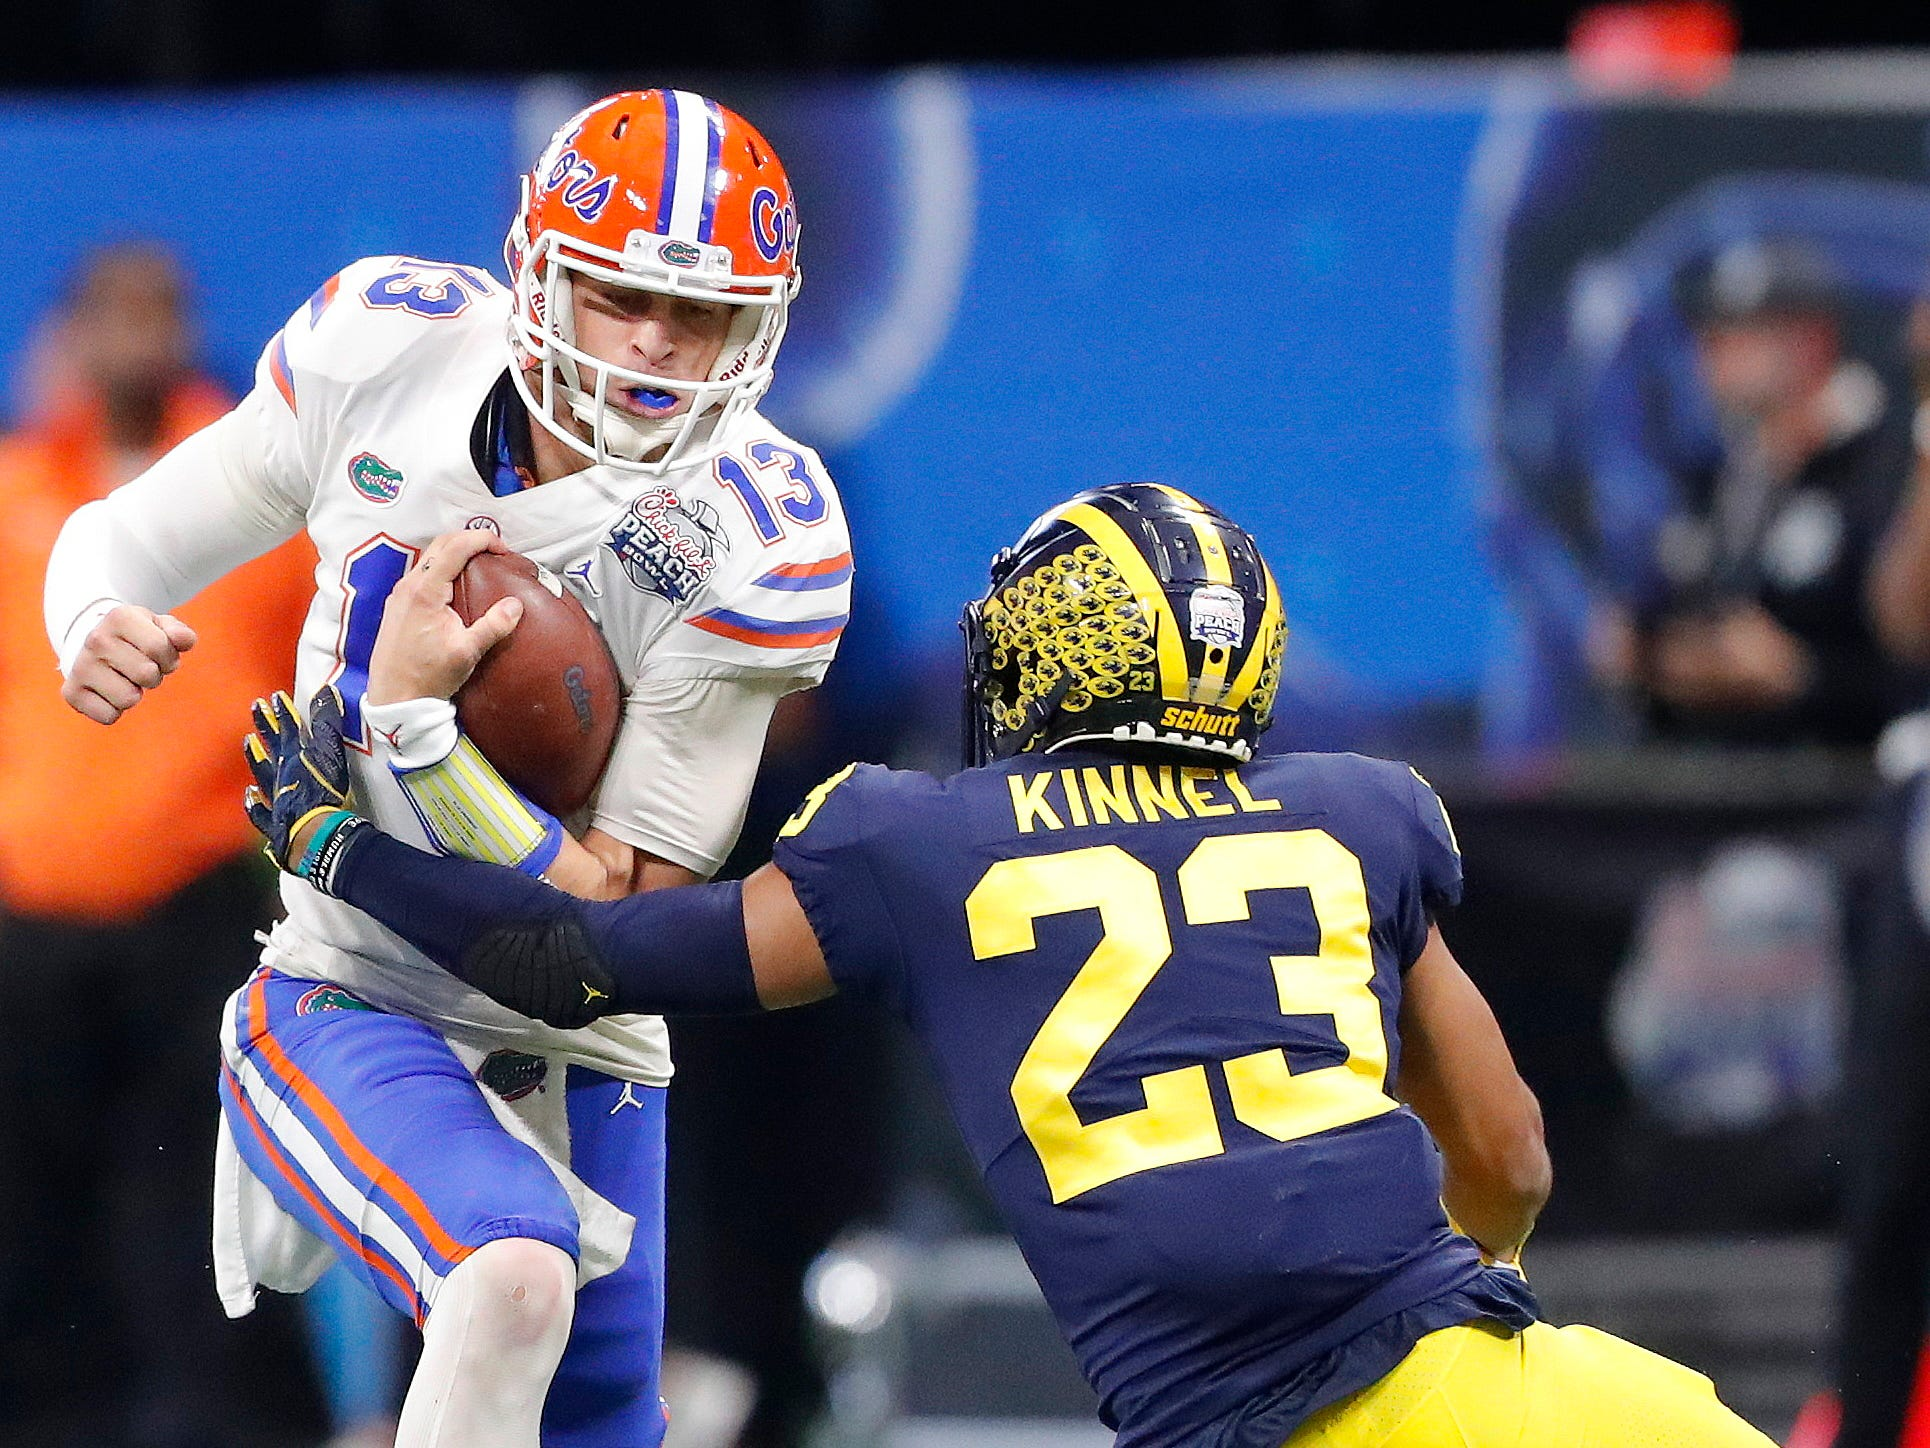 Florida quarterback Feleipe Franks runs into Michigan defensive back Tyree Kinnel during the first half of the Peach Bowl on Saturday, Dec. 29, 2018, in Atlanta.